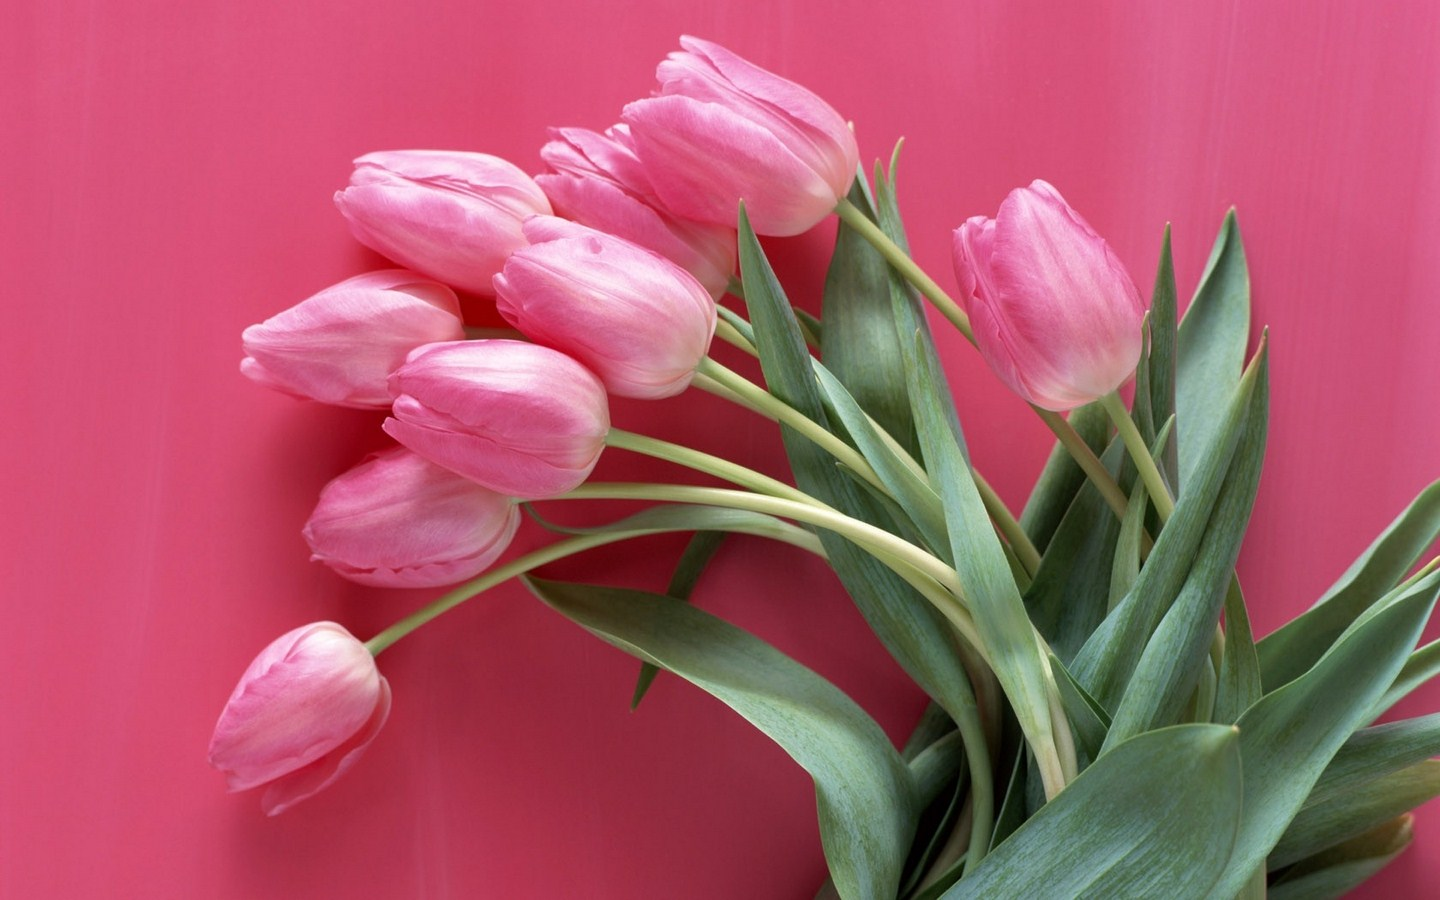 Tulips Pink Flowers Wallpaper 1440x900 1440 X 900 340x220